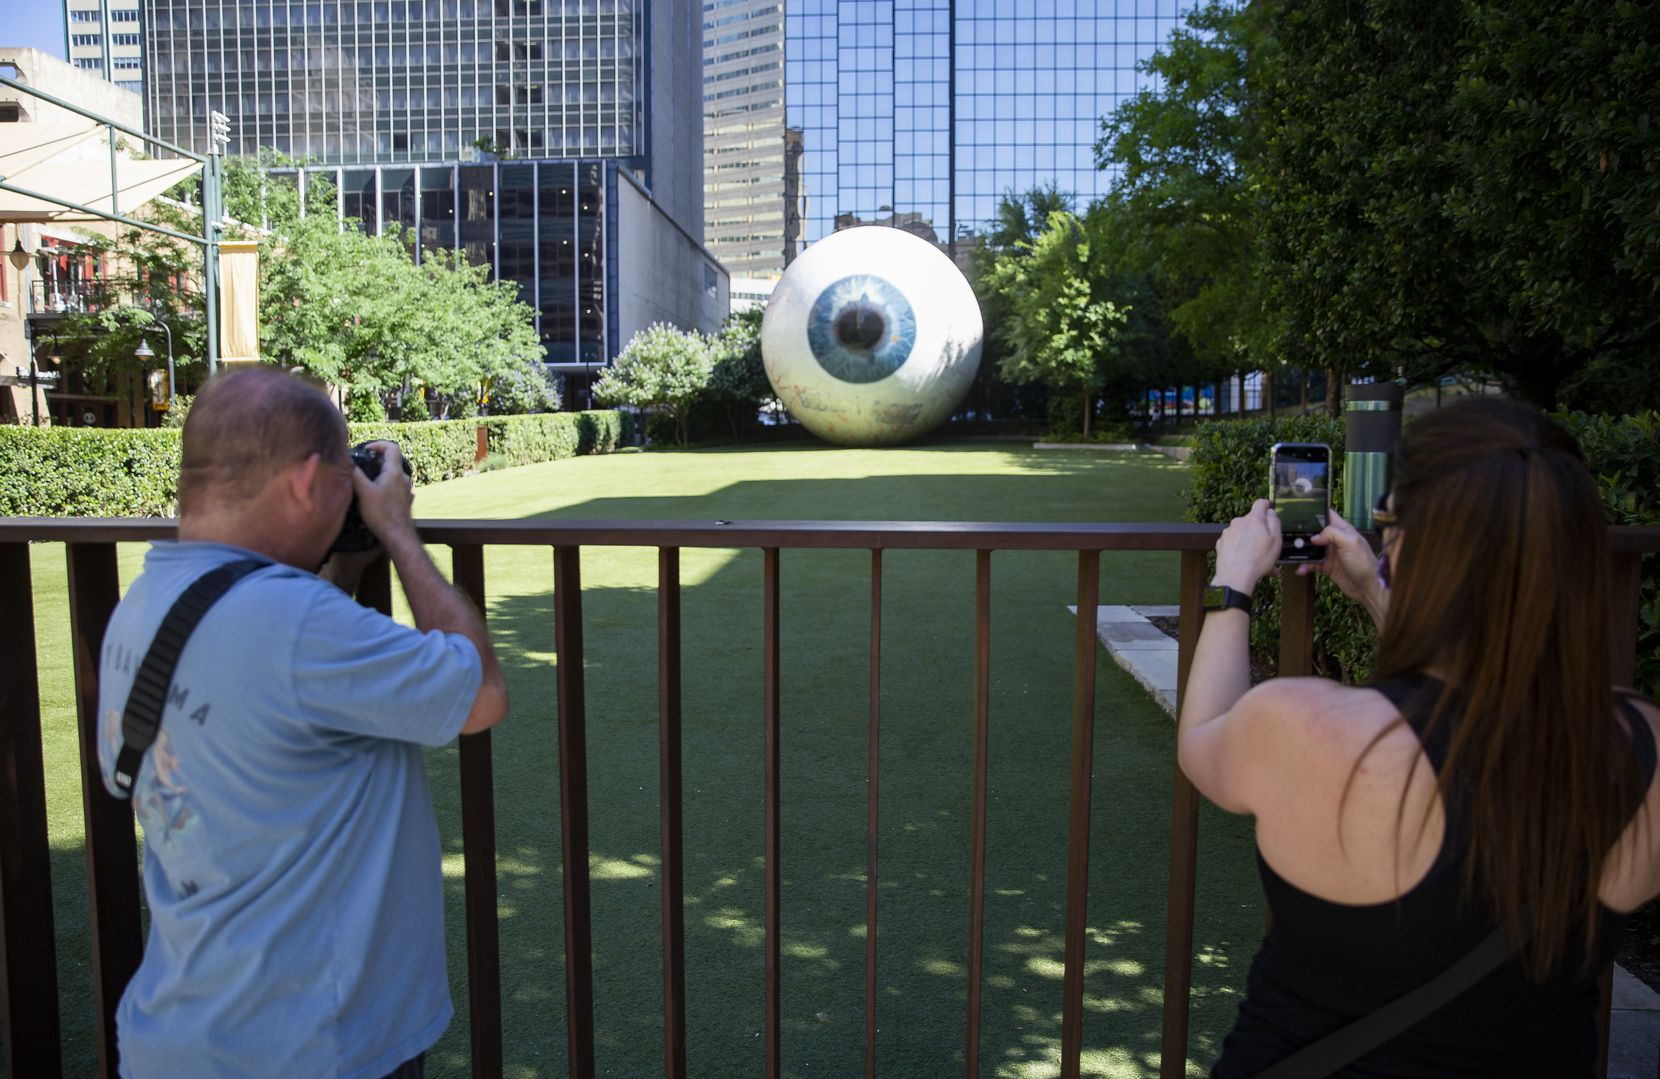 People take photos of the 'Eye' sculpture with graffiti covered up on Saturday morning, May 30. Protesters defaced it during Friday night's protest demonstration.